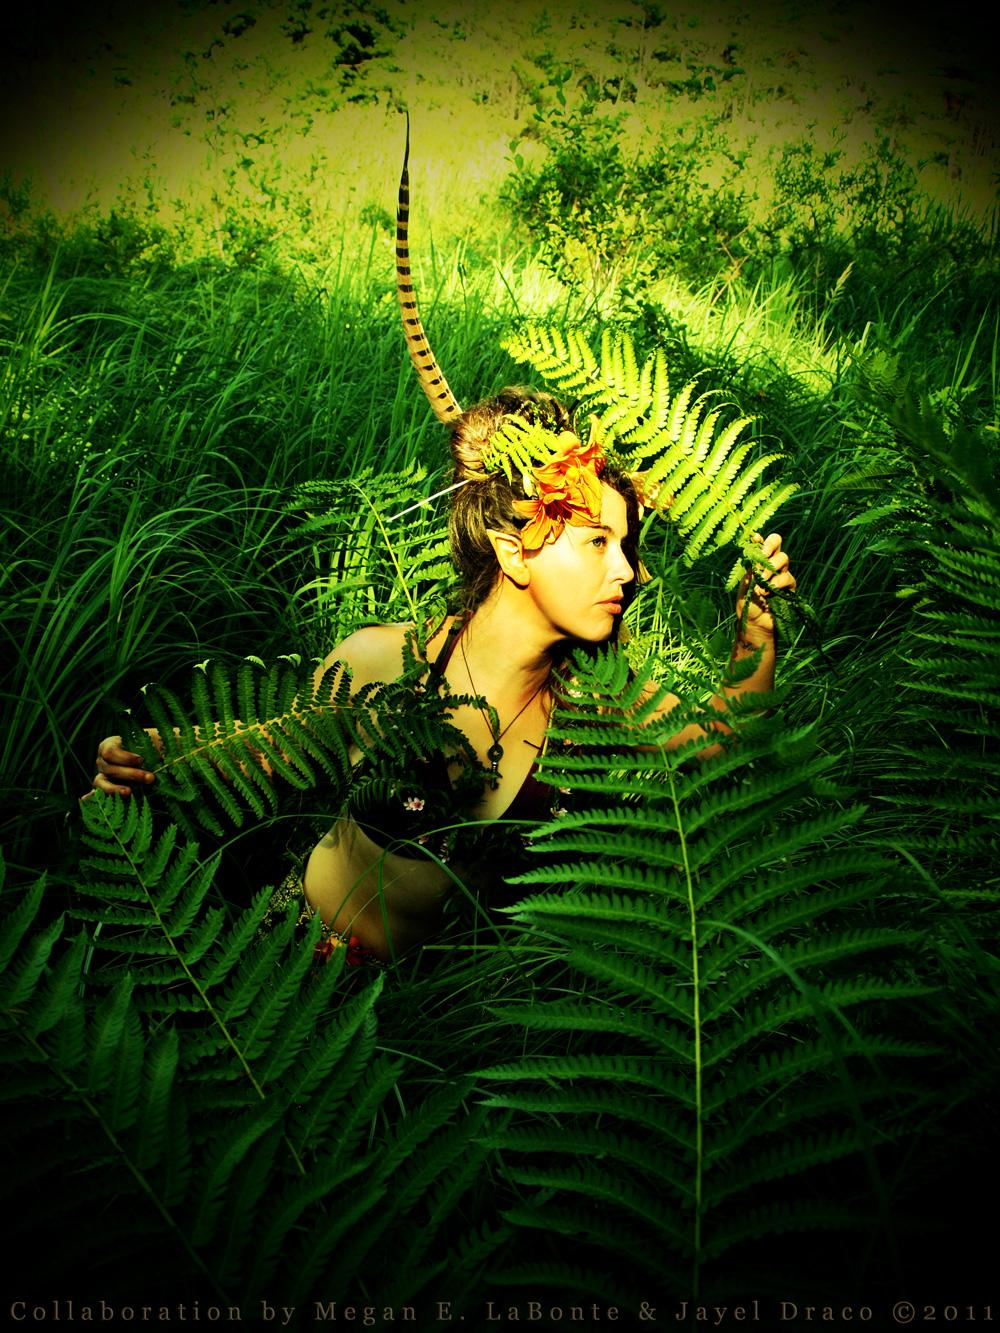 Fern Princess - Costume, Photography, and Photomanipulation by Jayel Draco